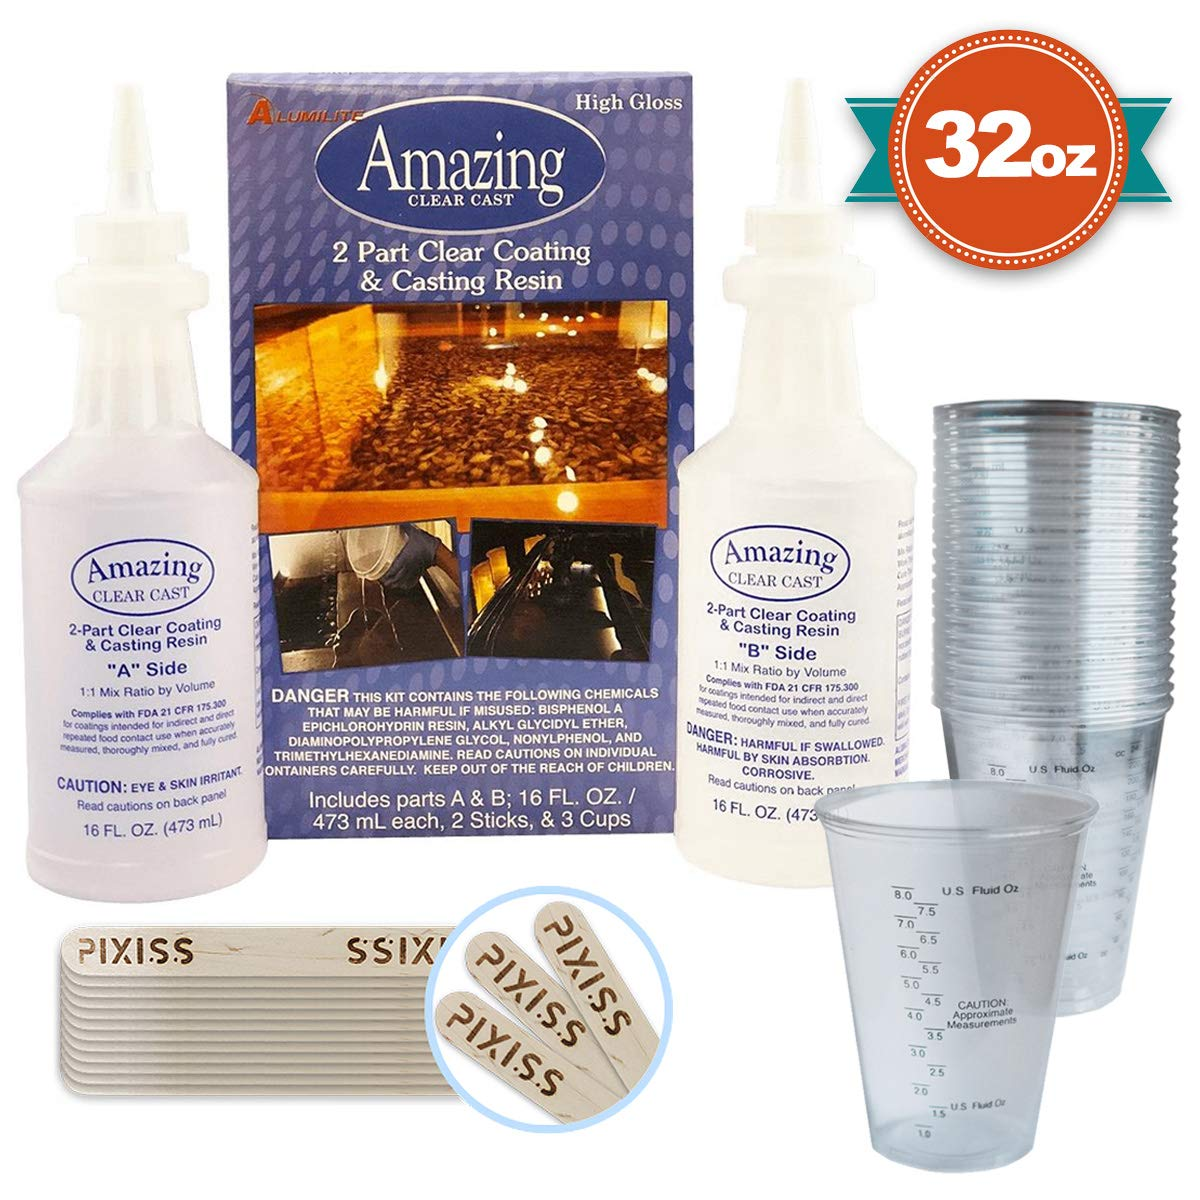 32-Ounce Alumilite Amazing Clear Cast Resin, 20x Disposable Graduated Clear Plastic Cups, Pixiss Mixing Sticks Bundle